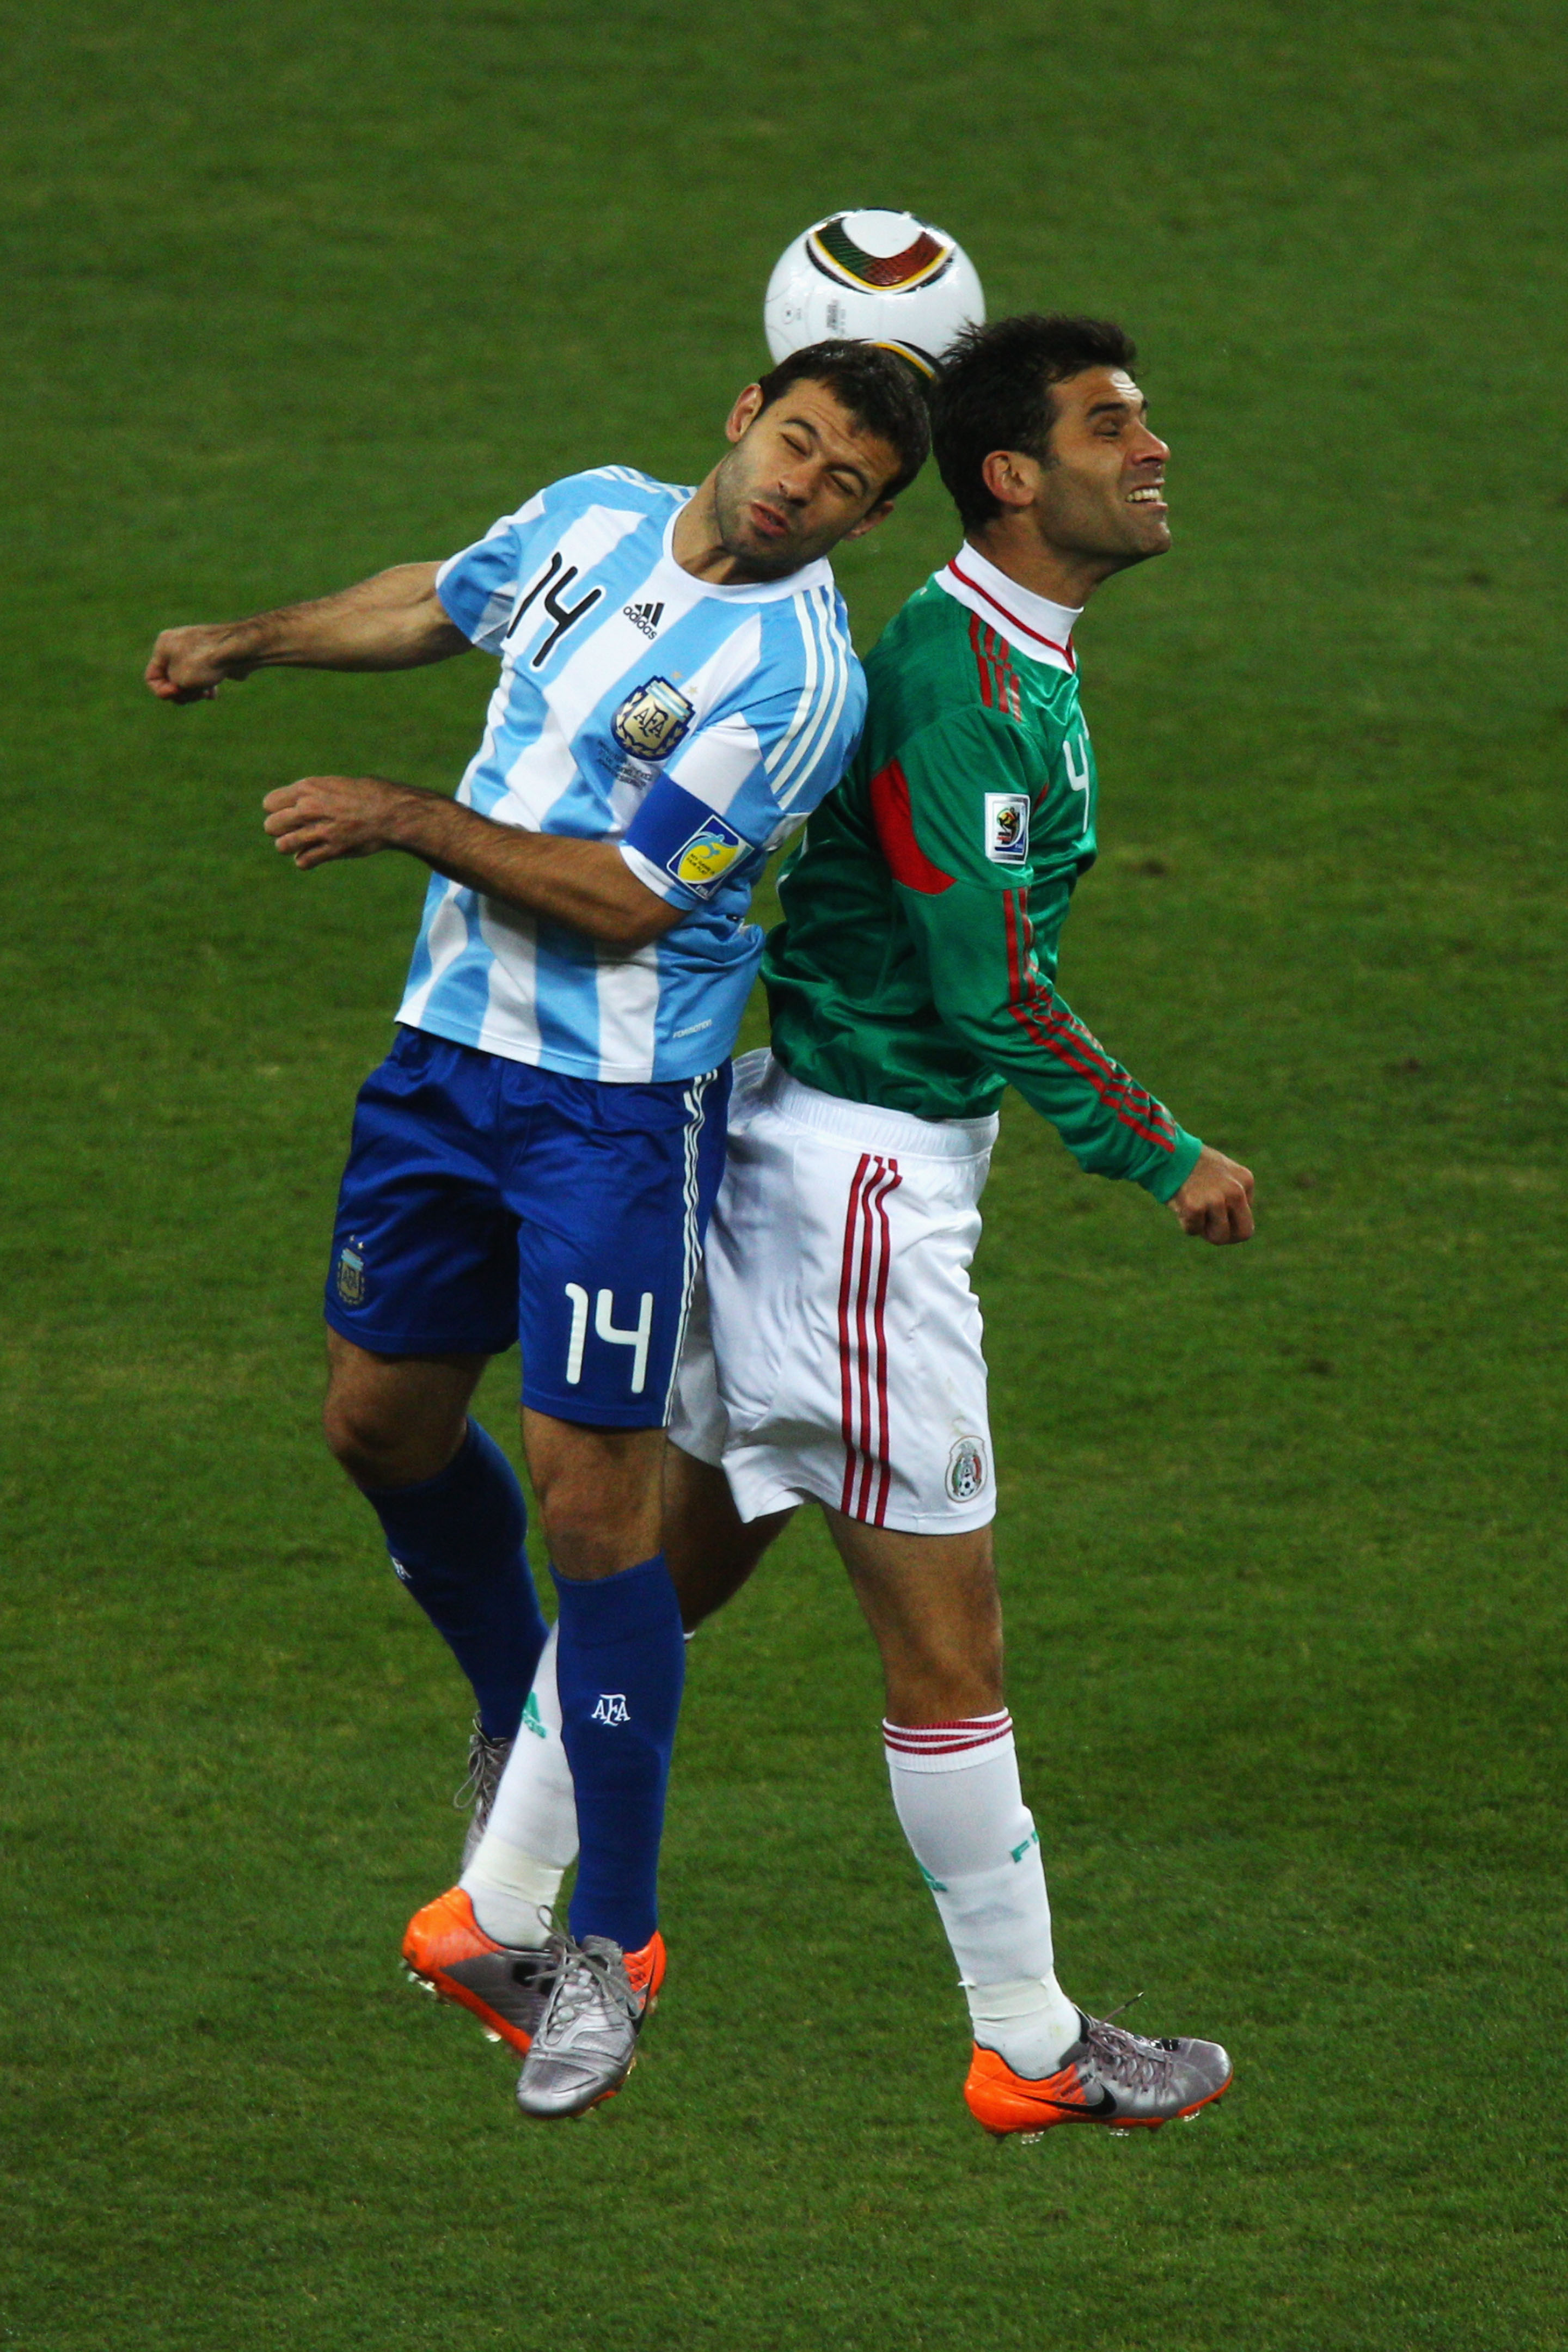 "Captains Javier Mascherano (left) and Rafael Marquez battle for the ball. Mascherano is a favorite of Maradona, who said when asked of his lineup going into the World Cup, """"Mascherano and 10 other guys."""